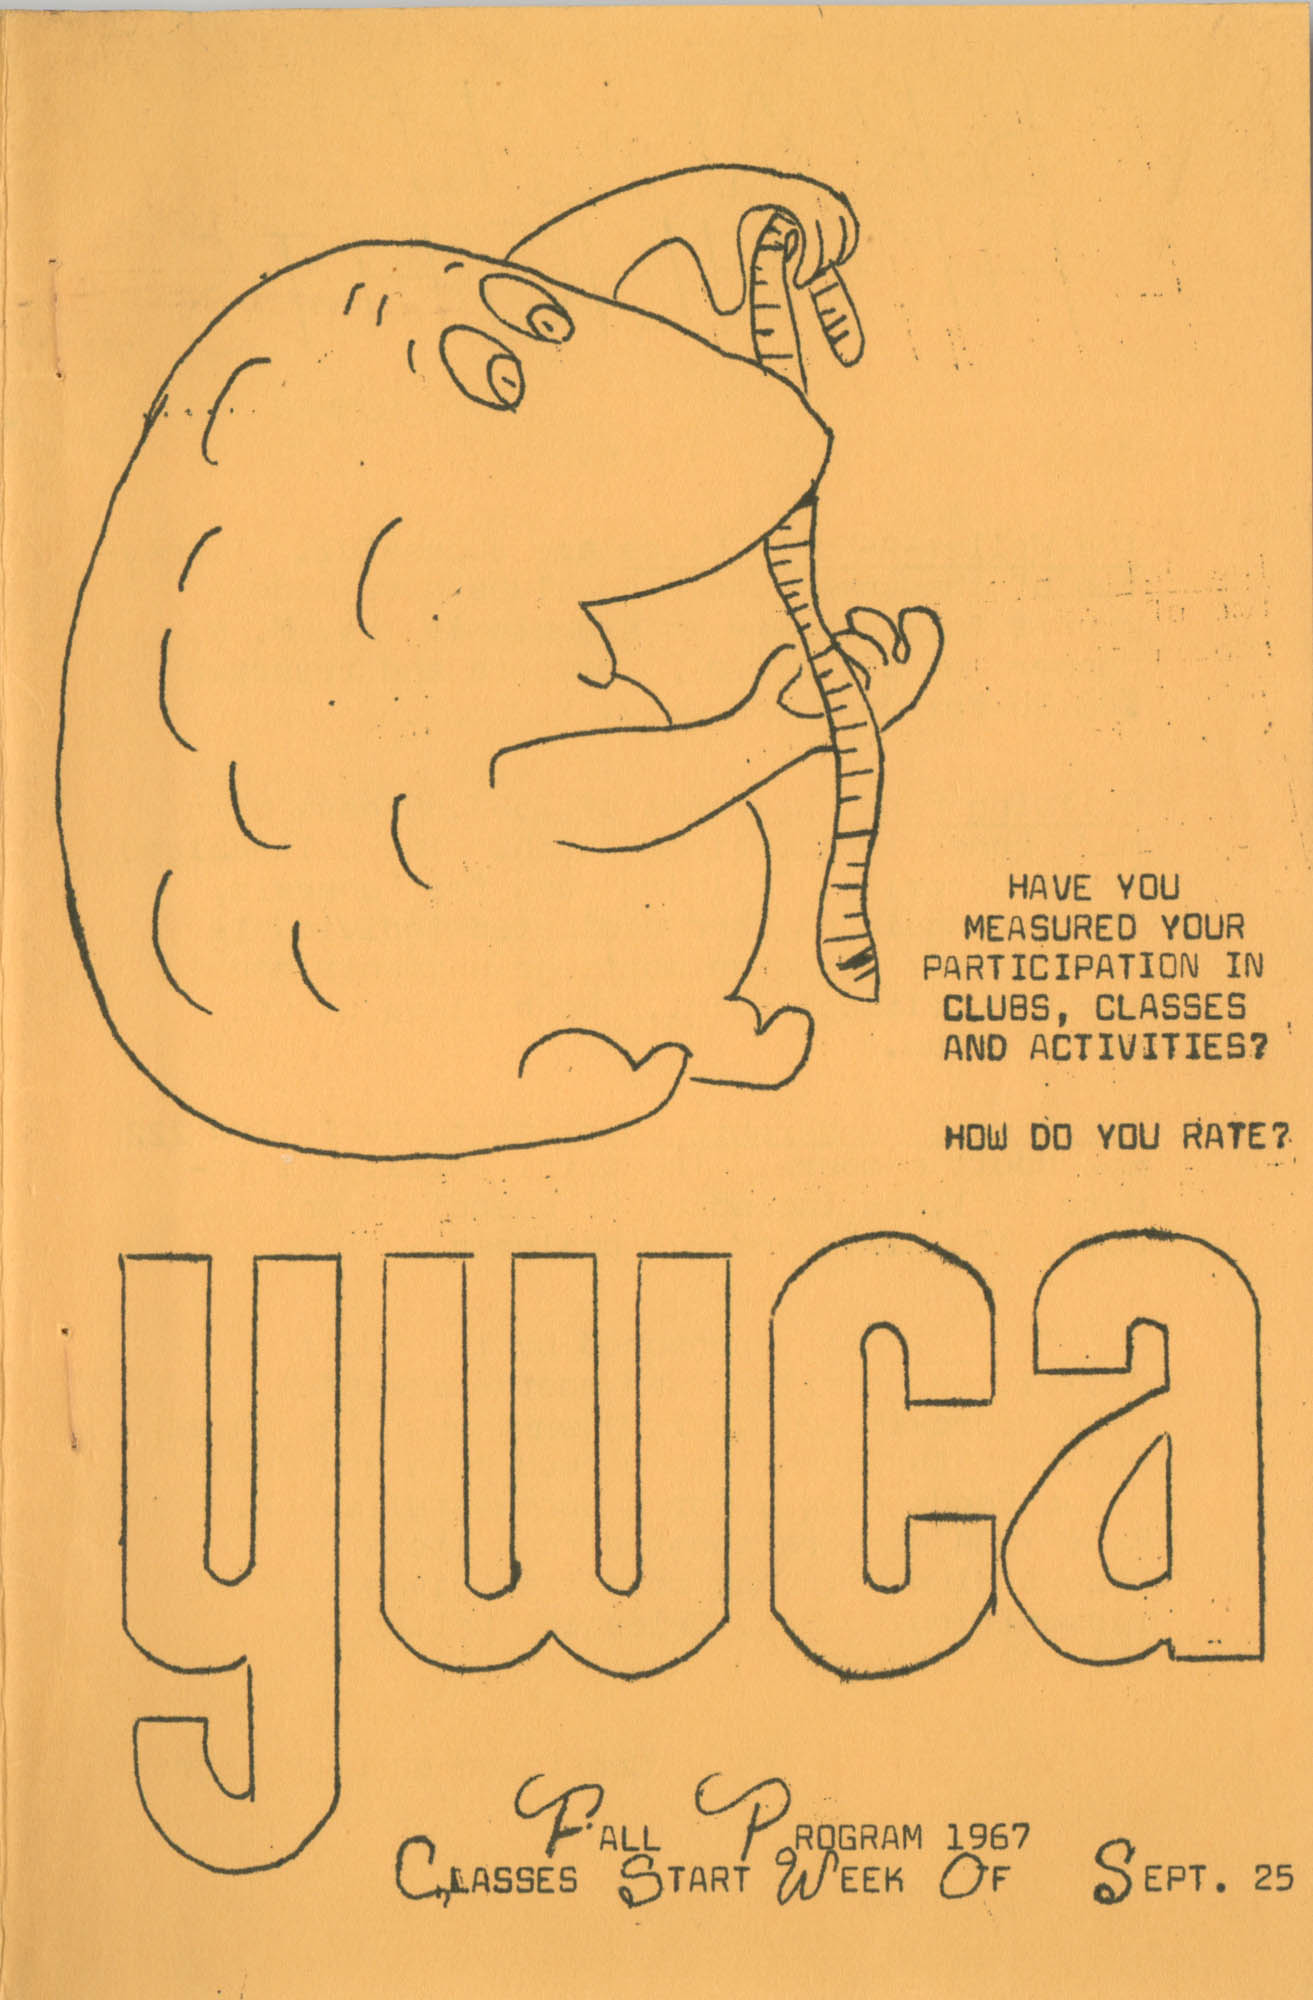 Coming Street Y.W.C.A. Fall Program, 1967, Cover